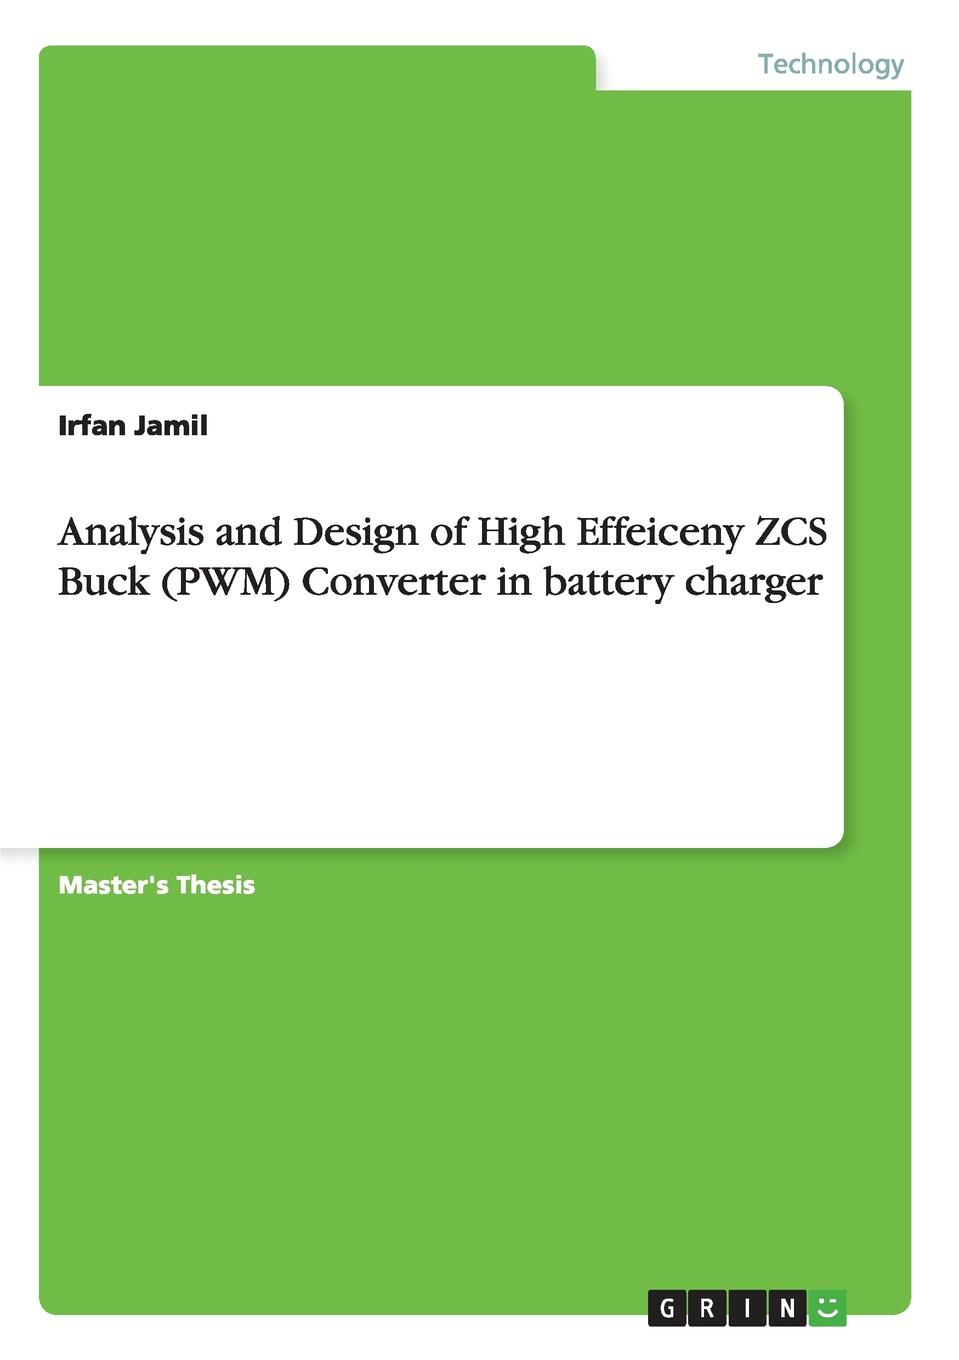 Irfan Jamil Analysis and Design of High Effeiceny ZCS Buck (PWM) Converter in battery charger xinbo ruan soft switching pwm full bridge converters topologies control and design